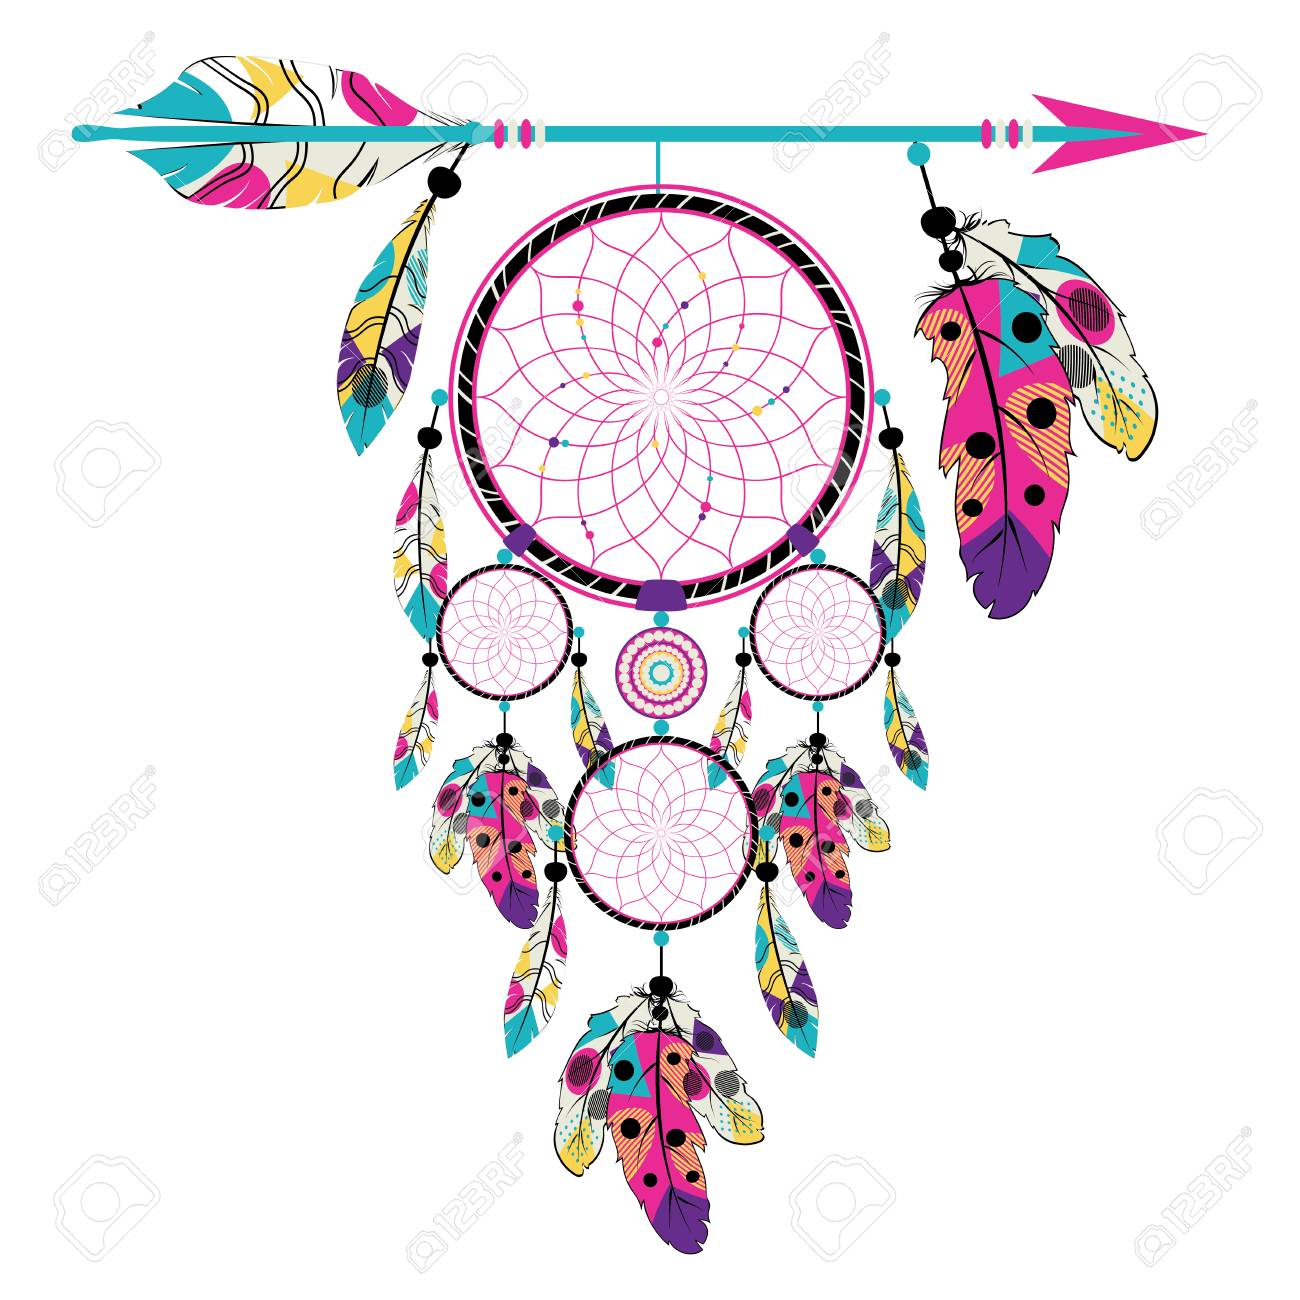 Feather Clipart Pink Boho Feather Clipart Tribal Border Clipart Dreamcatcher Clipart Commercial Use Clipart Set Boho Tribal Clipart Set